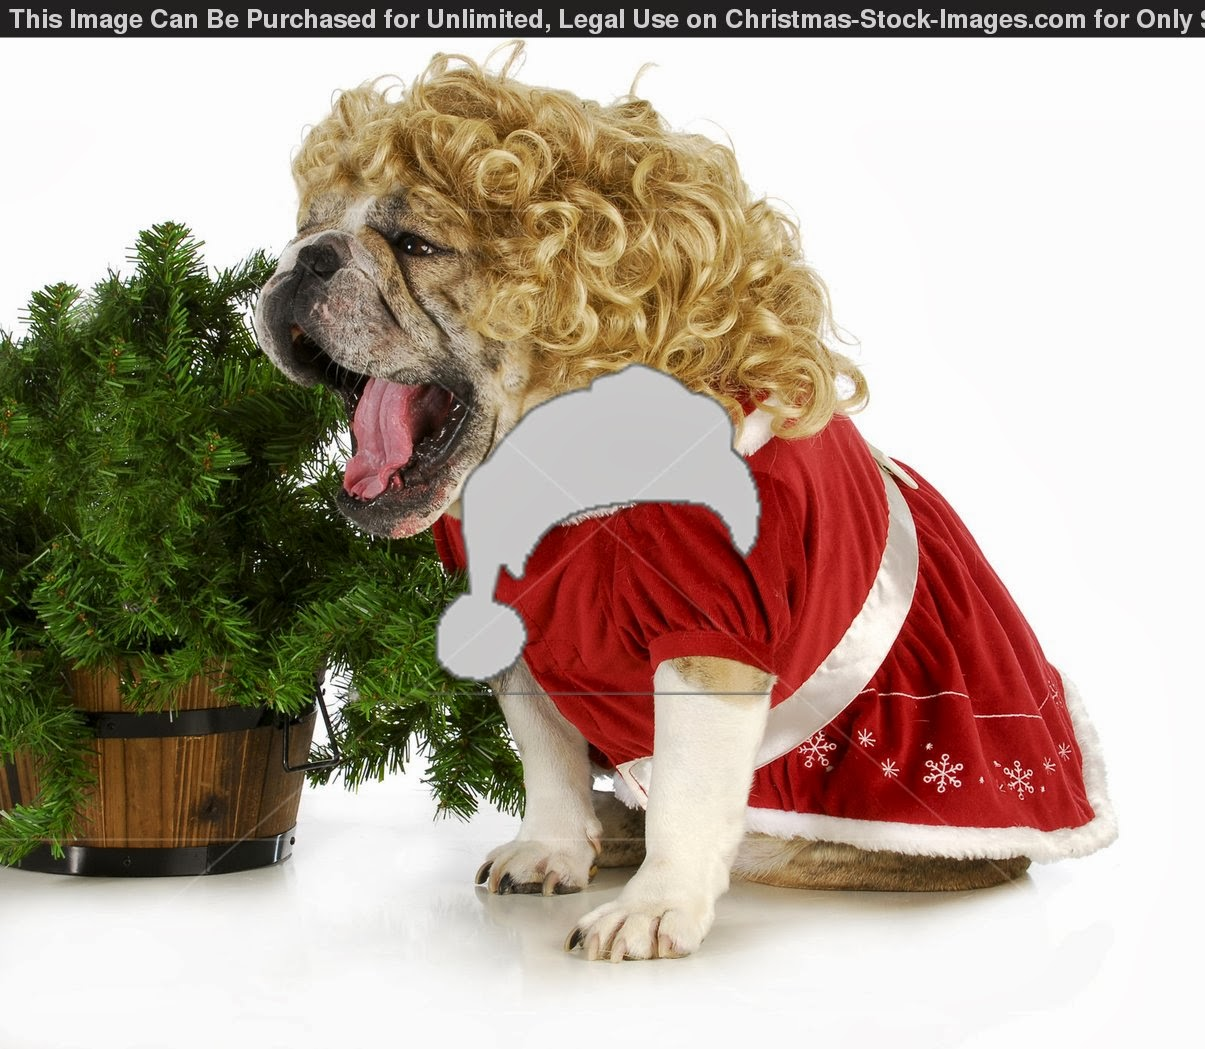 All new wallpaper My Christmas gift for dog lovers wallpaper 1205x1049